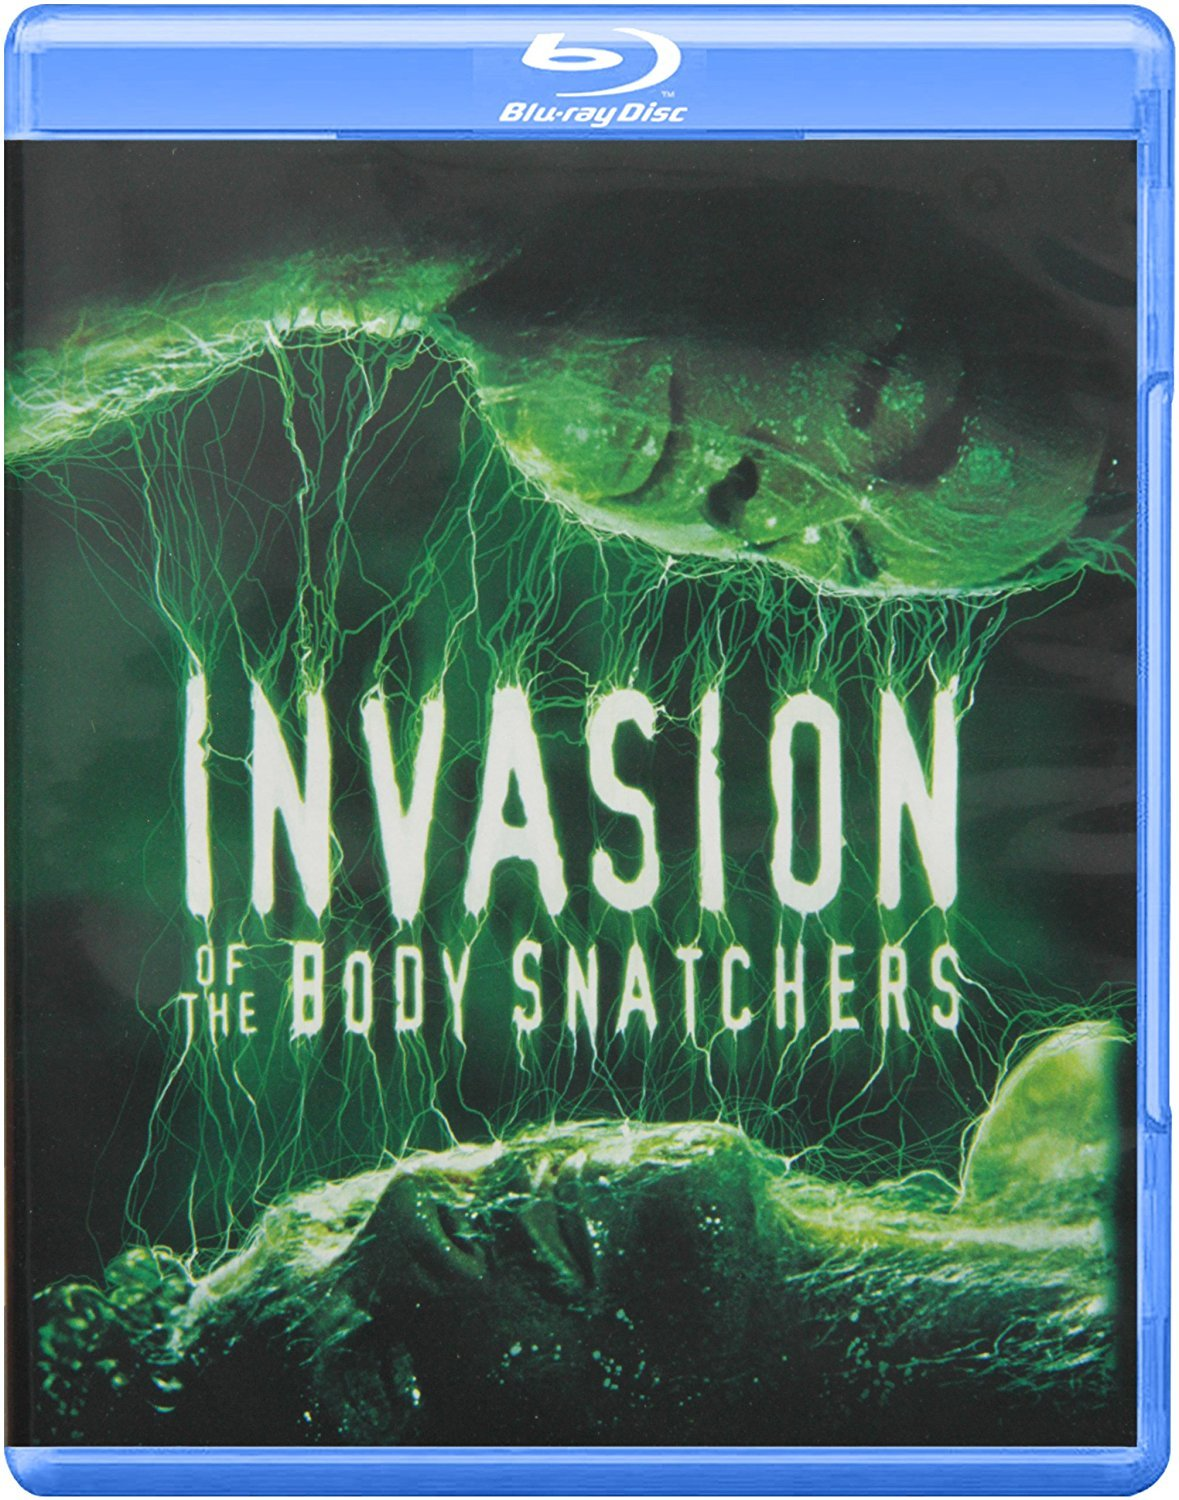 Invasion of the Body Snatchers (Blu-ray Disc, 2011)